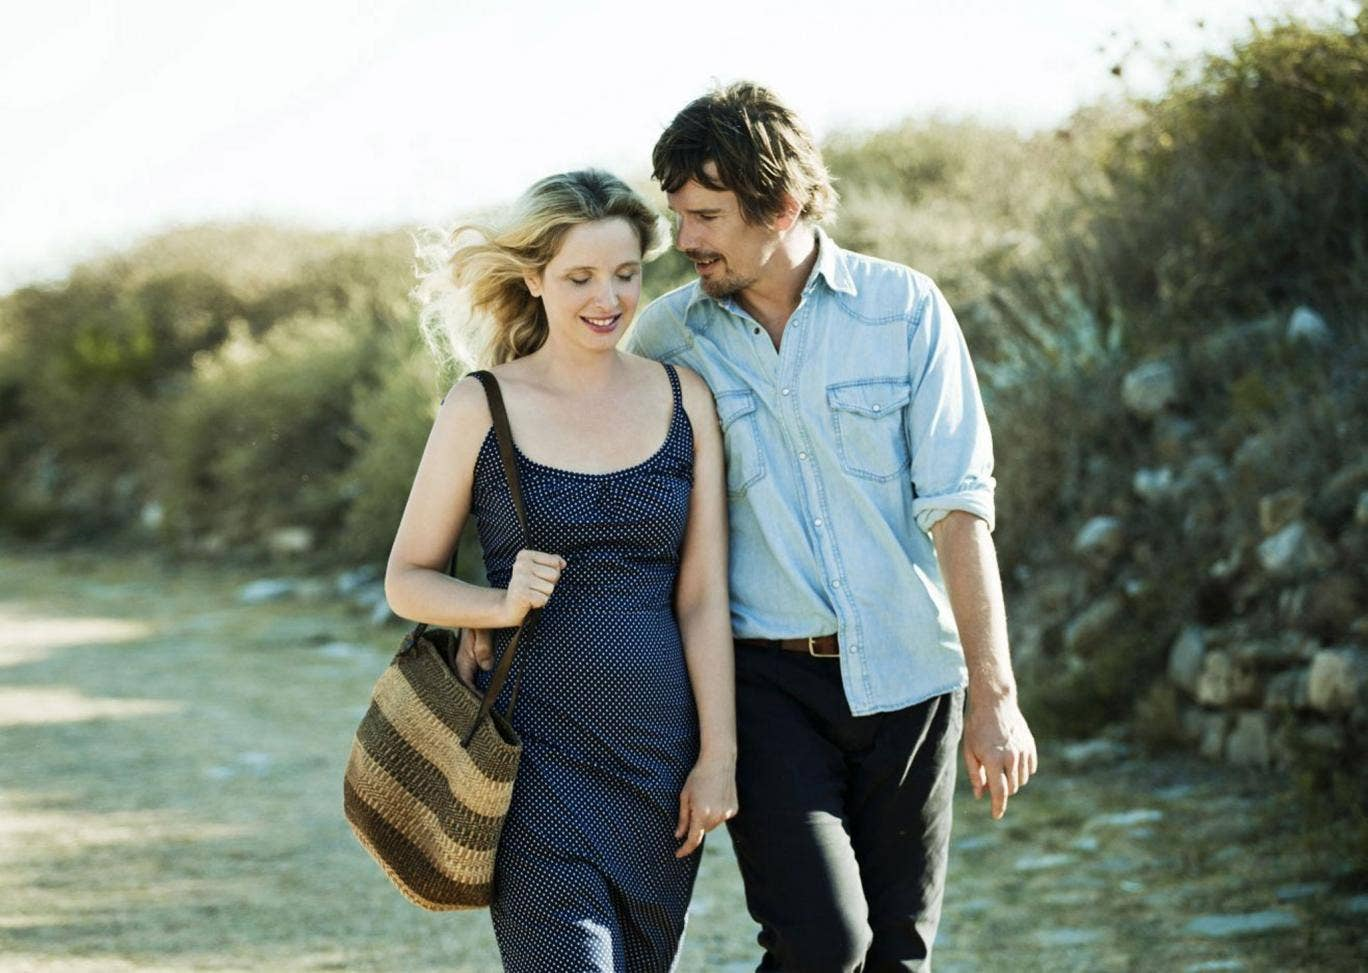 Walking and talking: Ethan Hawke and Julie Delpy star in Richard Linklater's drama 'Before Midnight'